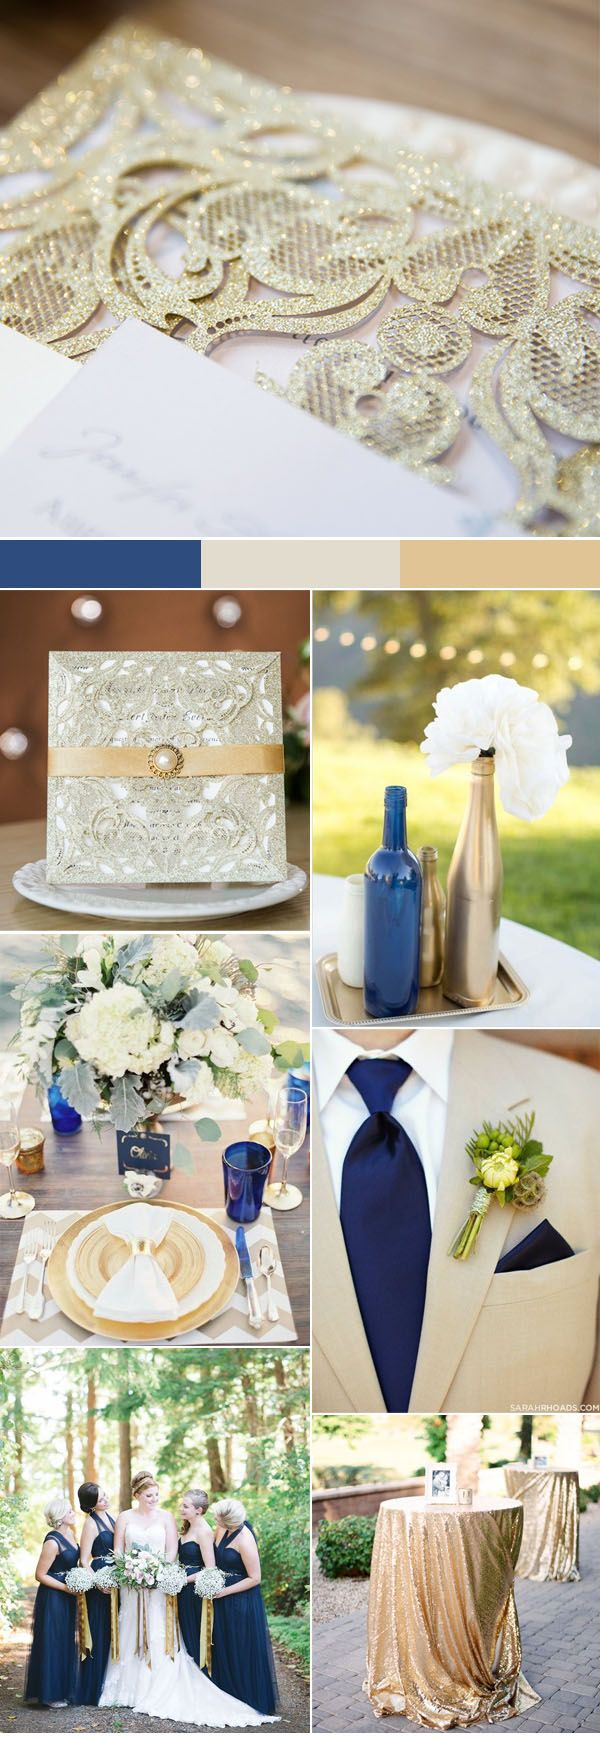 elegant traditional navy and gold country wedding colors